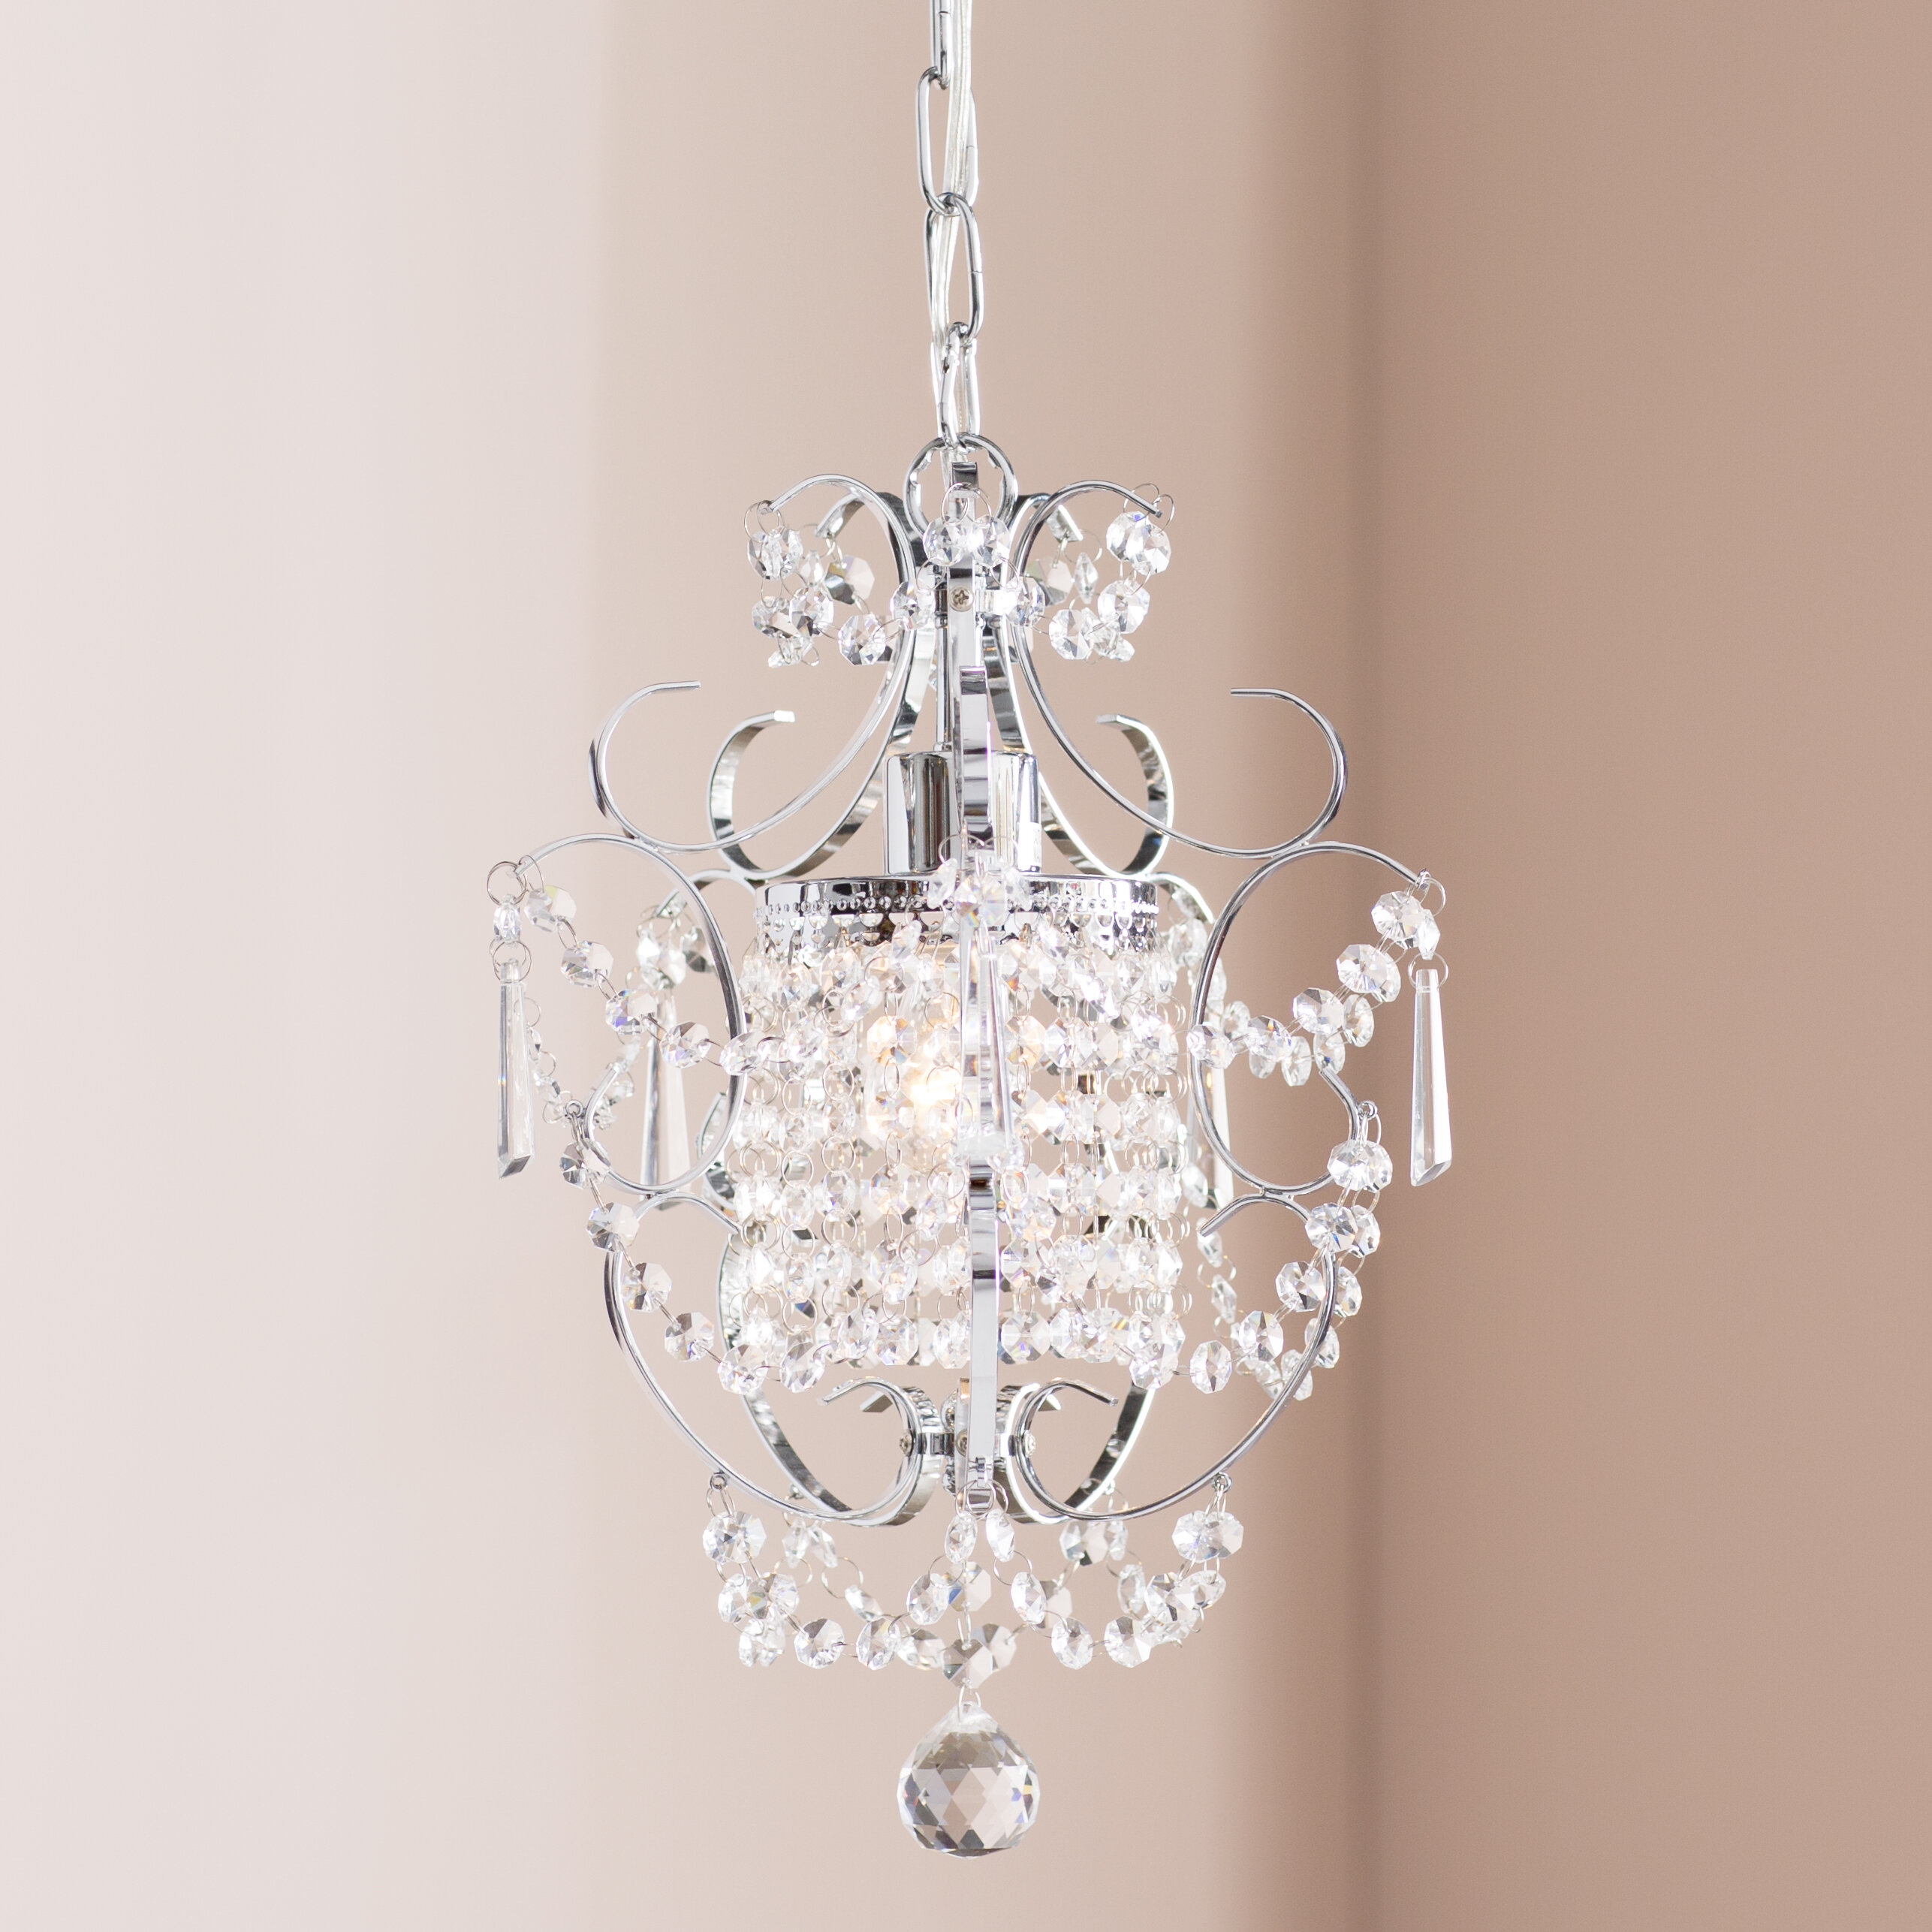 zoom fixtures ceiling tuscany light of lights chandeliers crystal